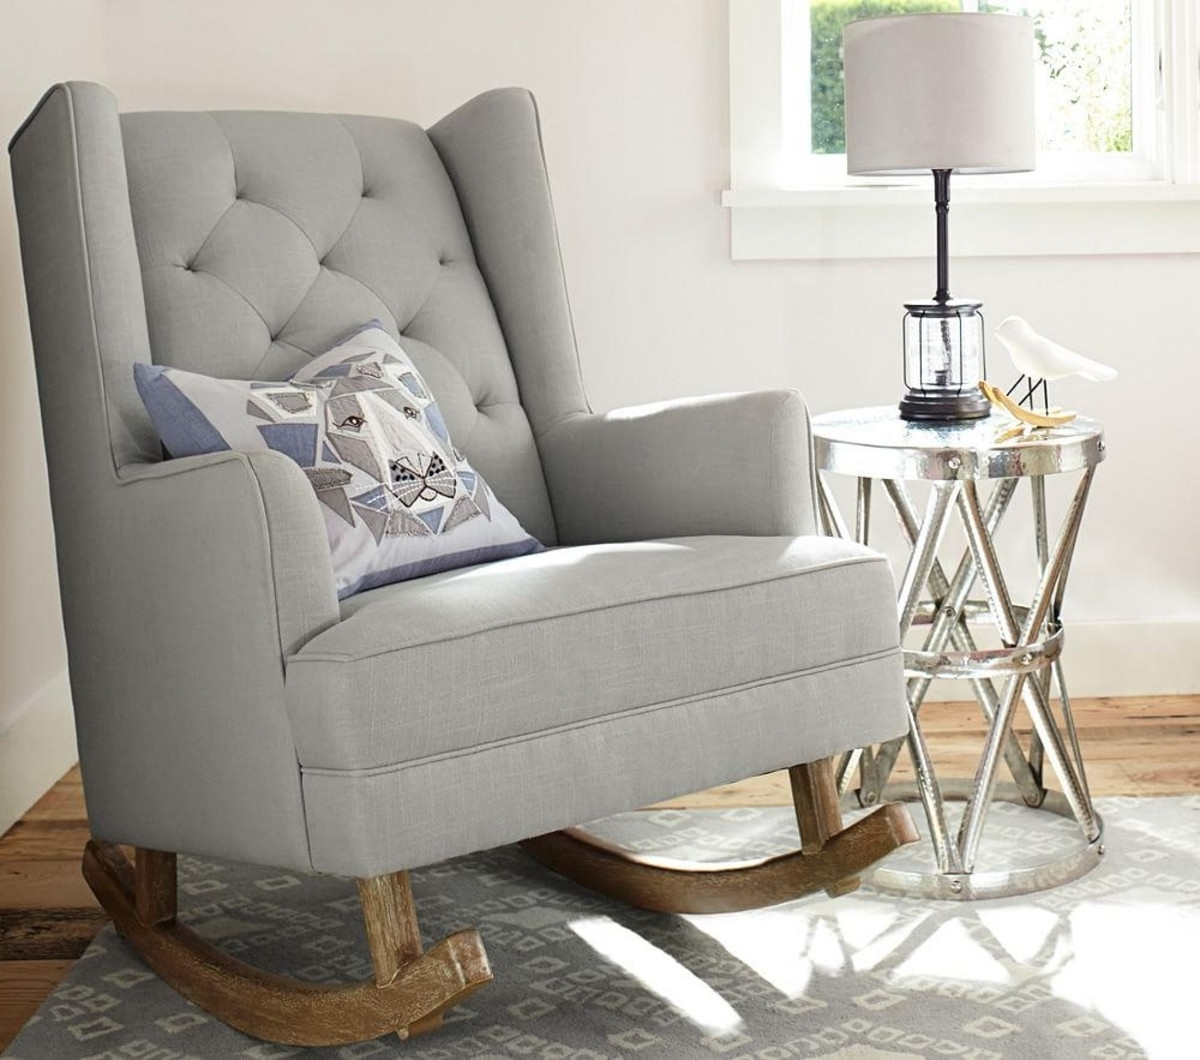 Well Known Uncategorized Nursery Chair Rocking Chairs For Cheap I Buy Ideas On Intended For Rocking Chairs For Nursing (View 18 of 20)